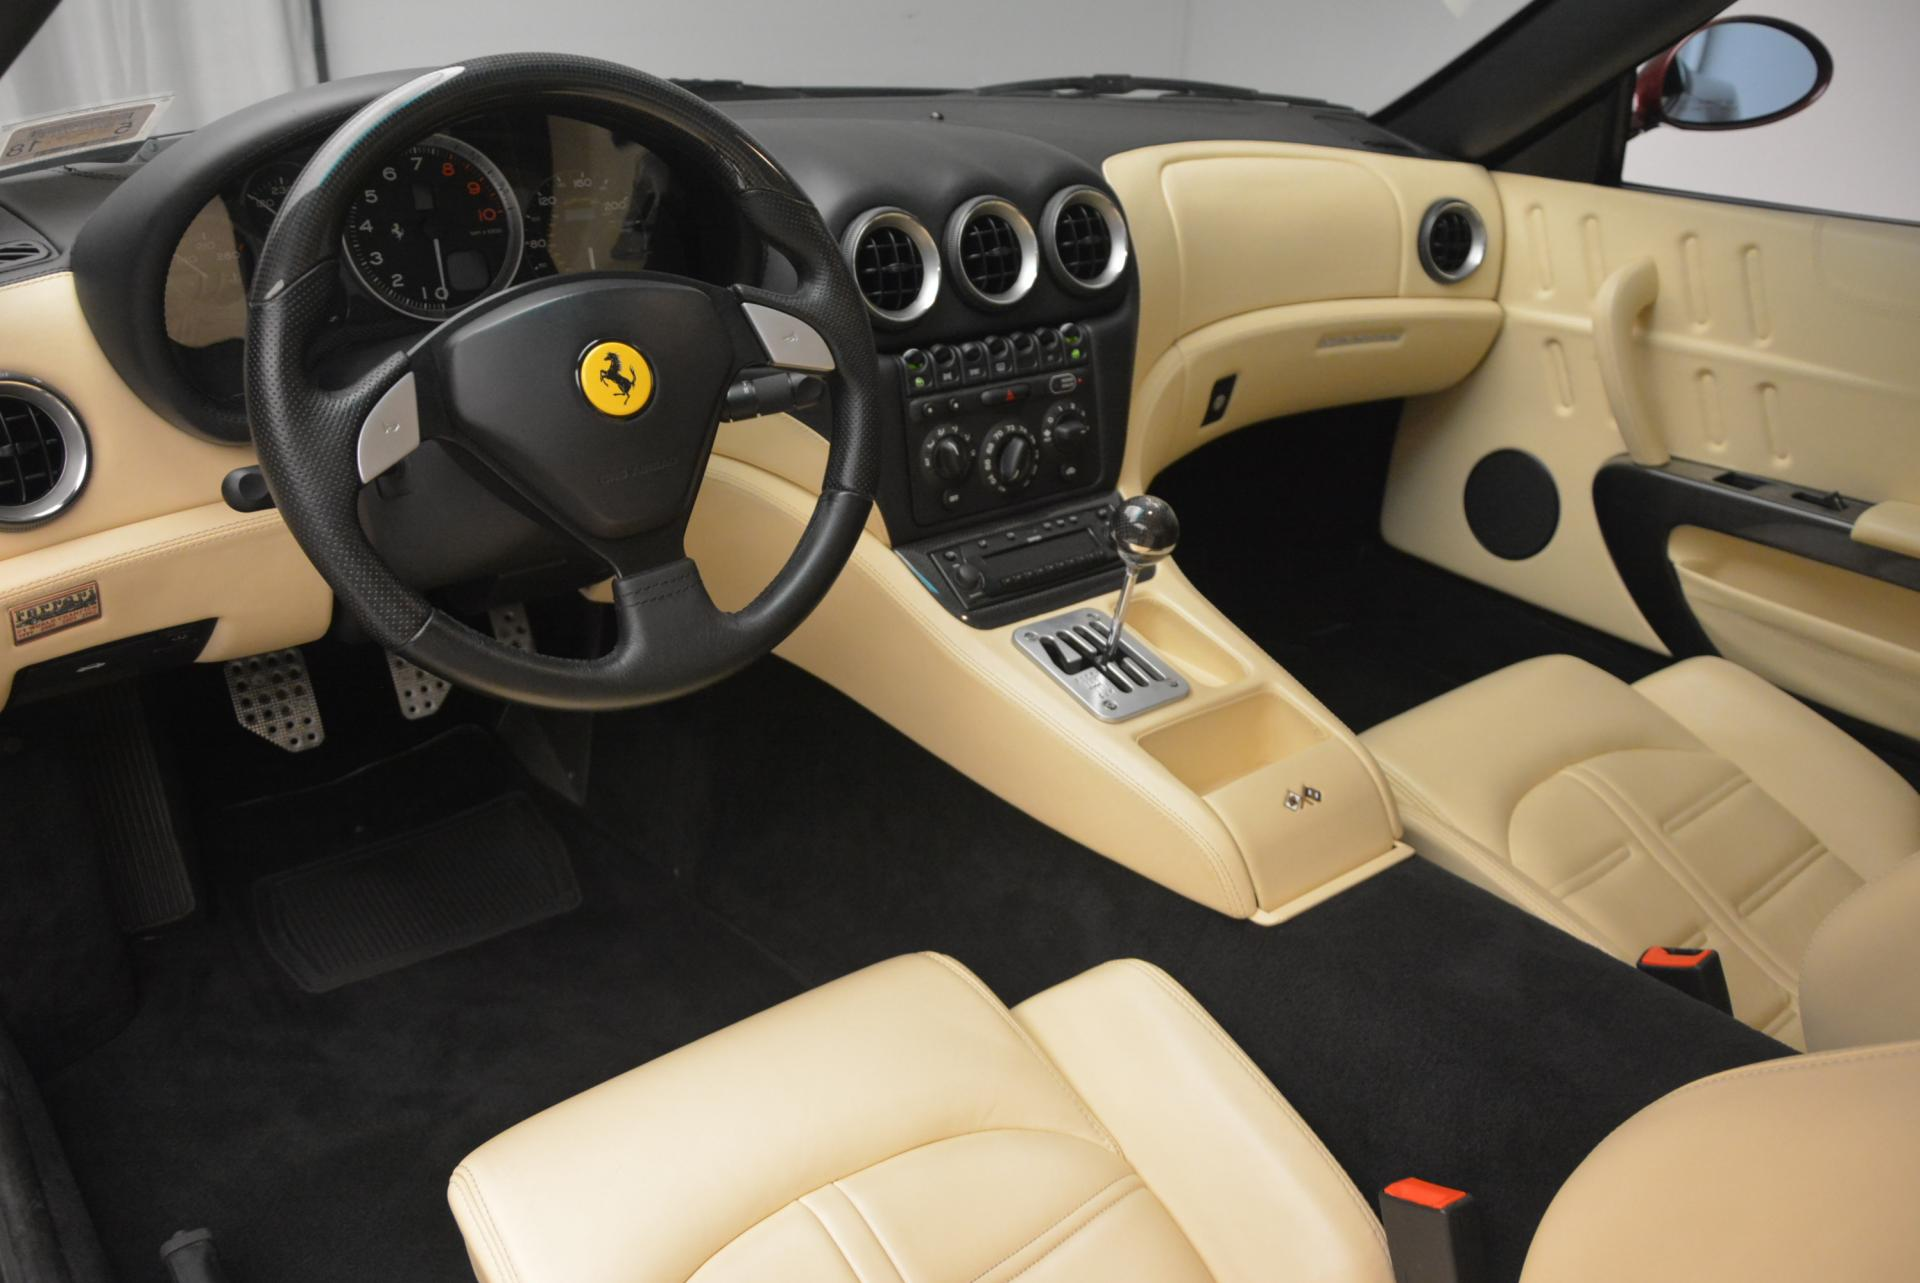 Used 2003 Ferrari 575M Maranello 6-Speed Manual For Sale In Westport, CT 143_p13